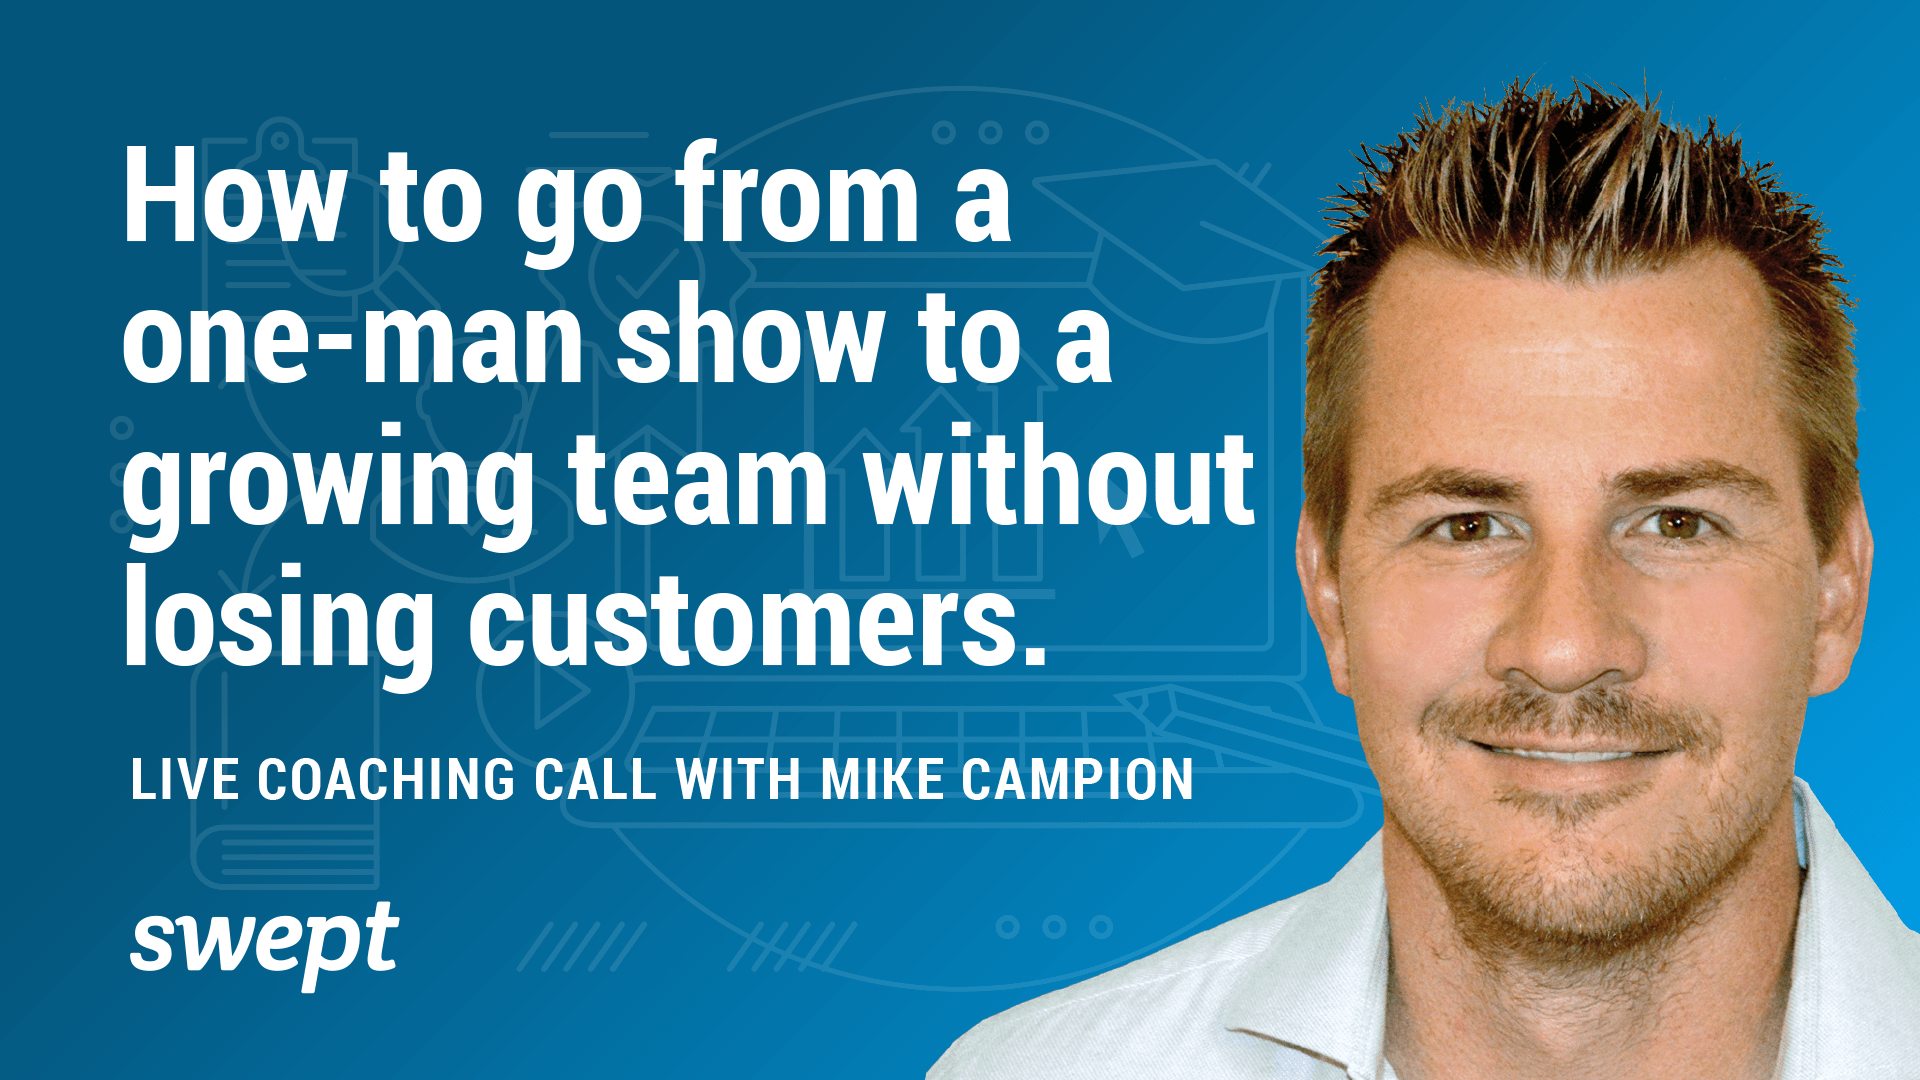 How to go from a one-man show to a growing team without losing customers: Live Coaching Call with Mike Campion!